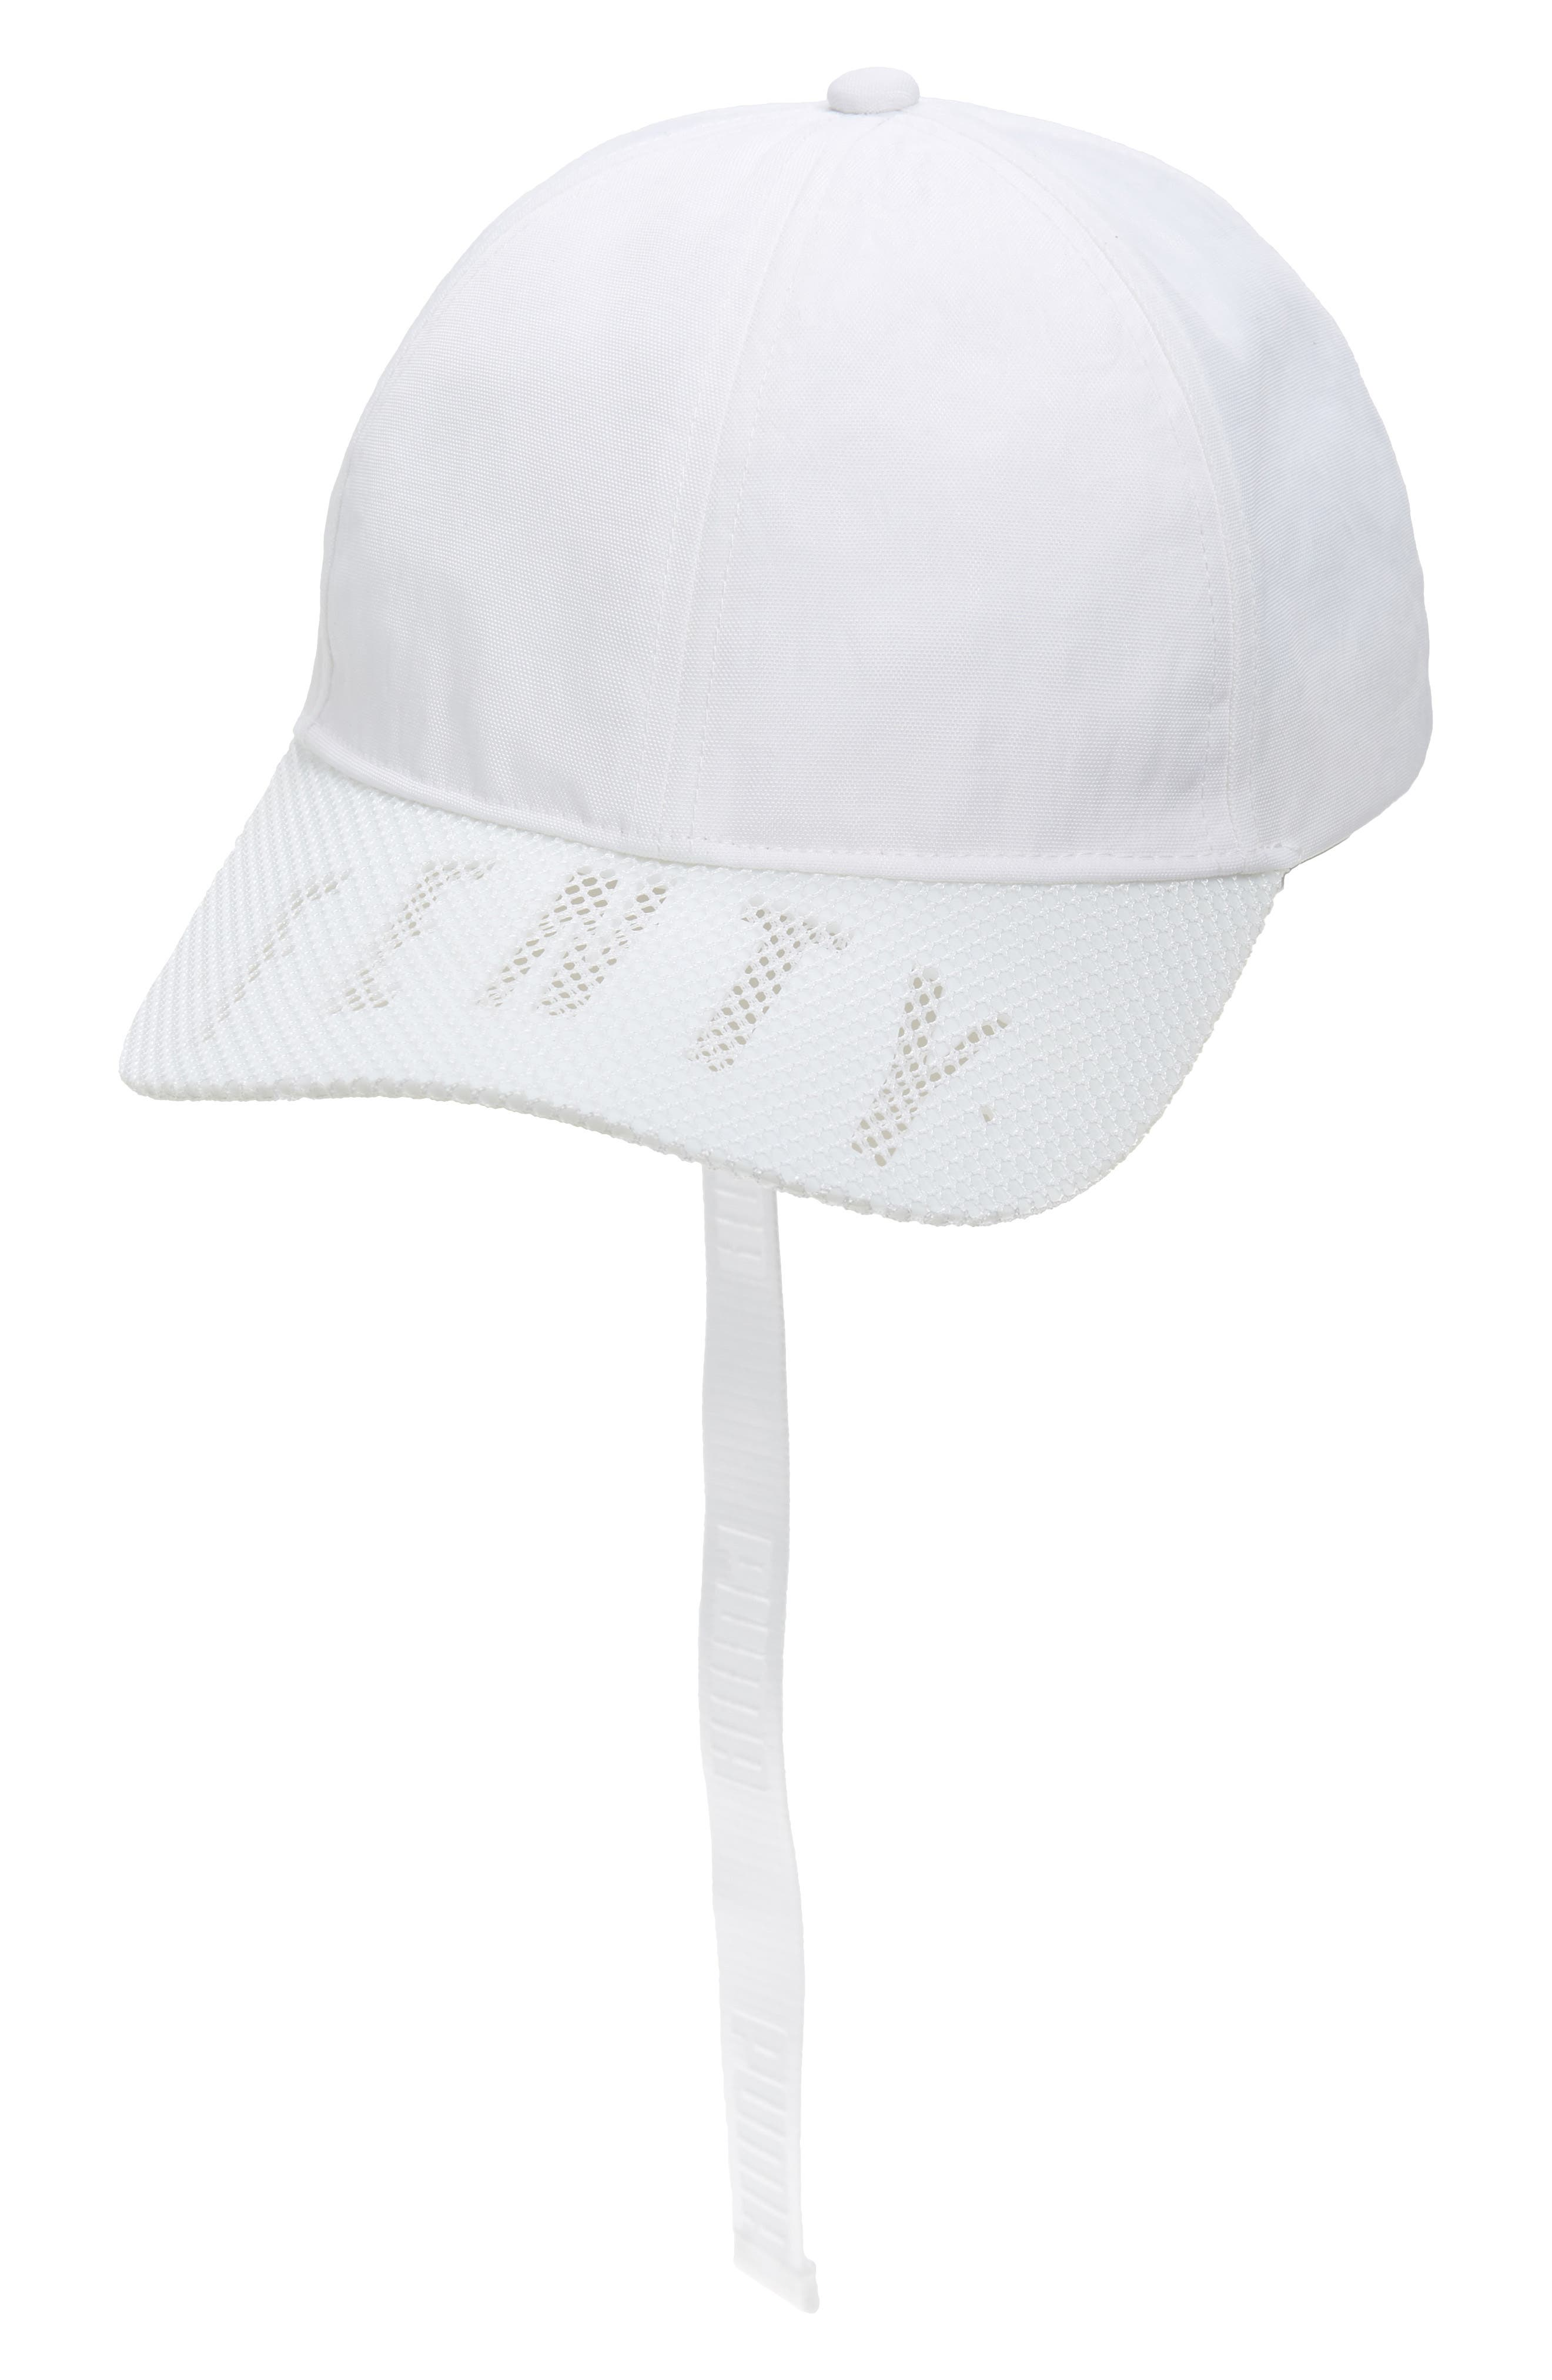 PUMA by Rihanna Perforated Baseball Cap,                             Main thumbnail 1, color,                             Bright White